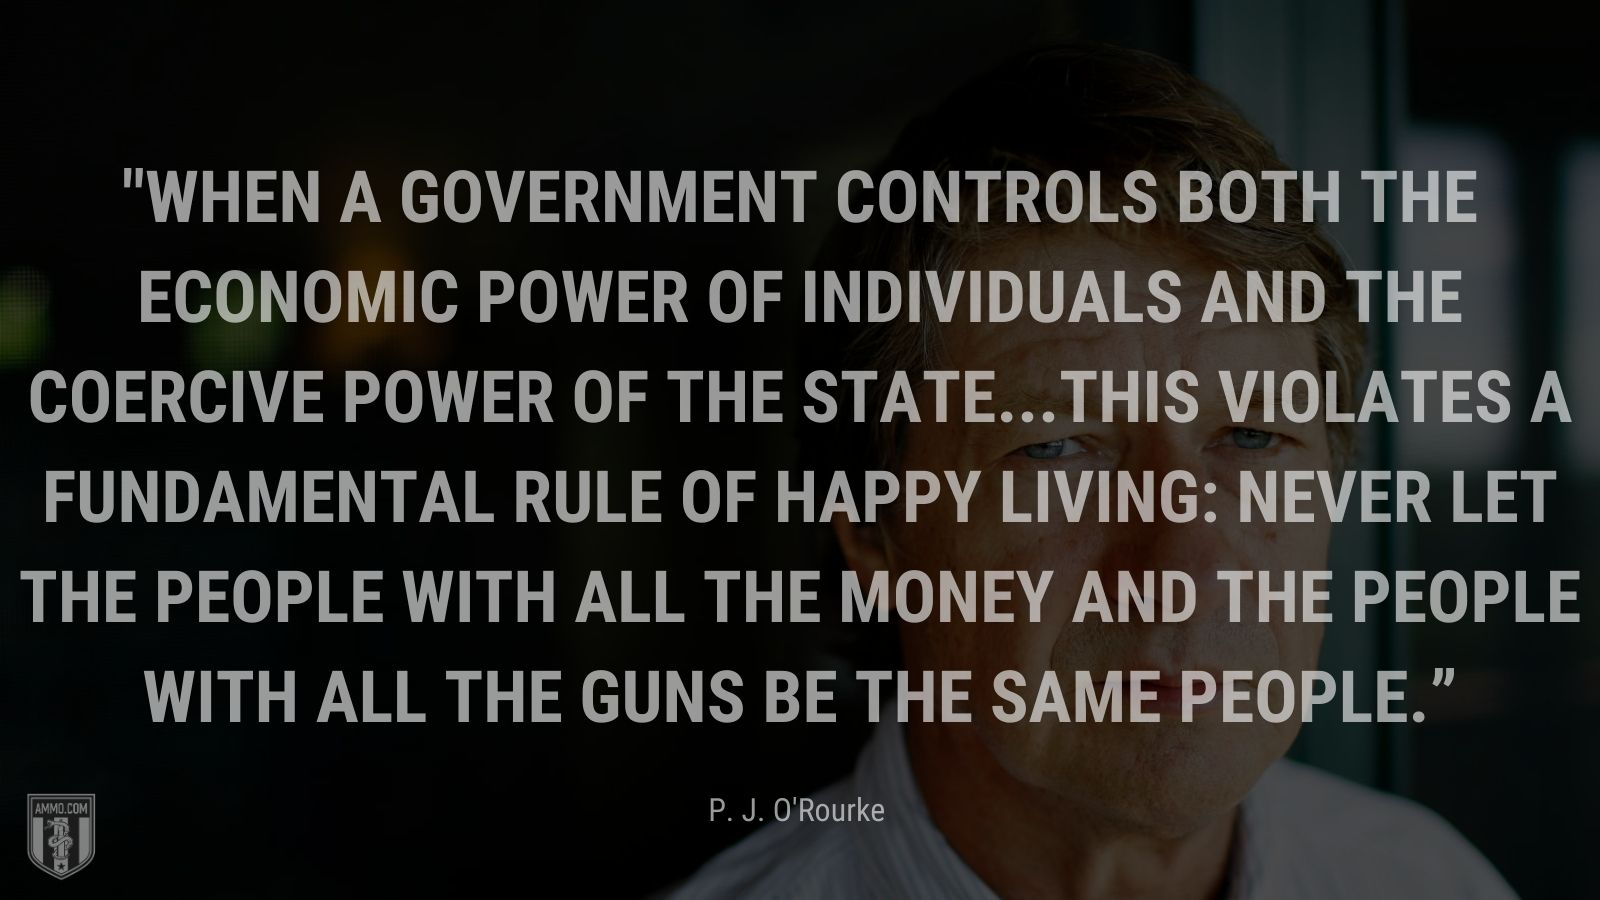 """""""When a government controls both the economic power of individuals and the coercive power of the state...this violates a fundamental rule of happy living: Never let the people with all the money and the people with all the guns be the same people."""" - P. J. O'Rourke"""